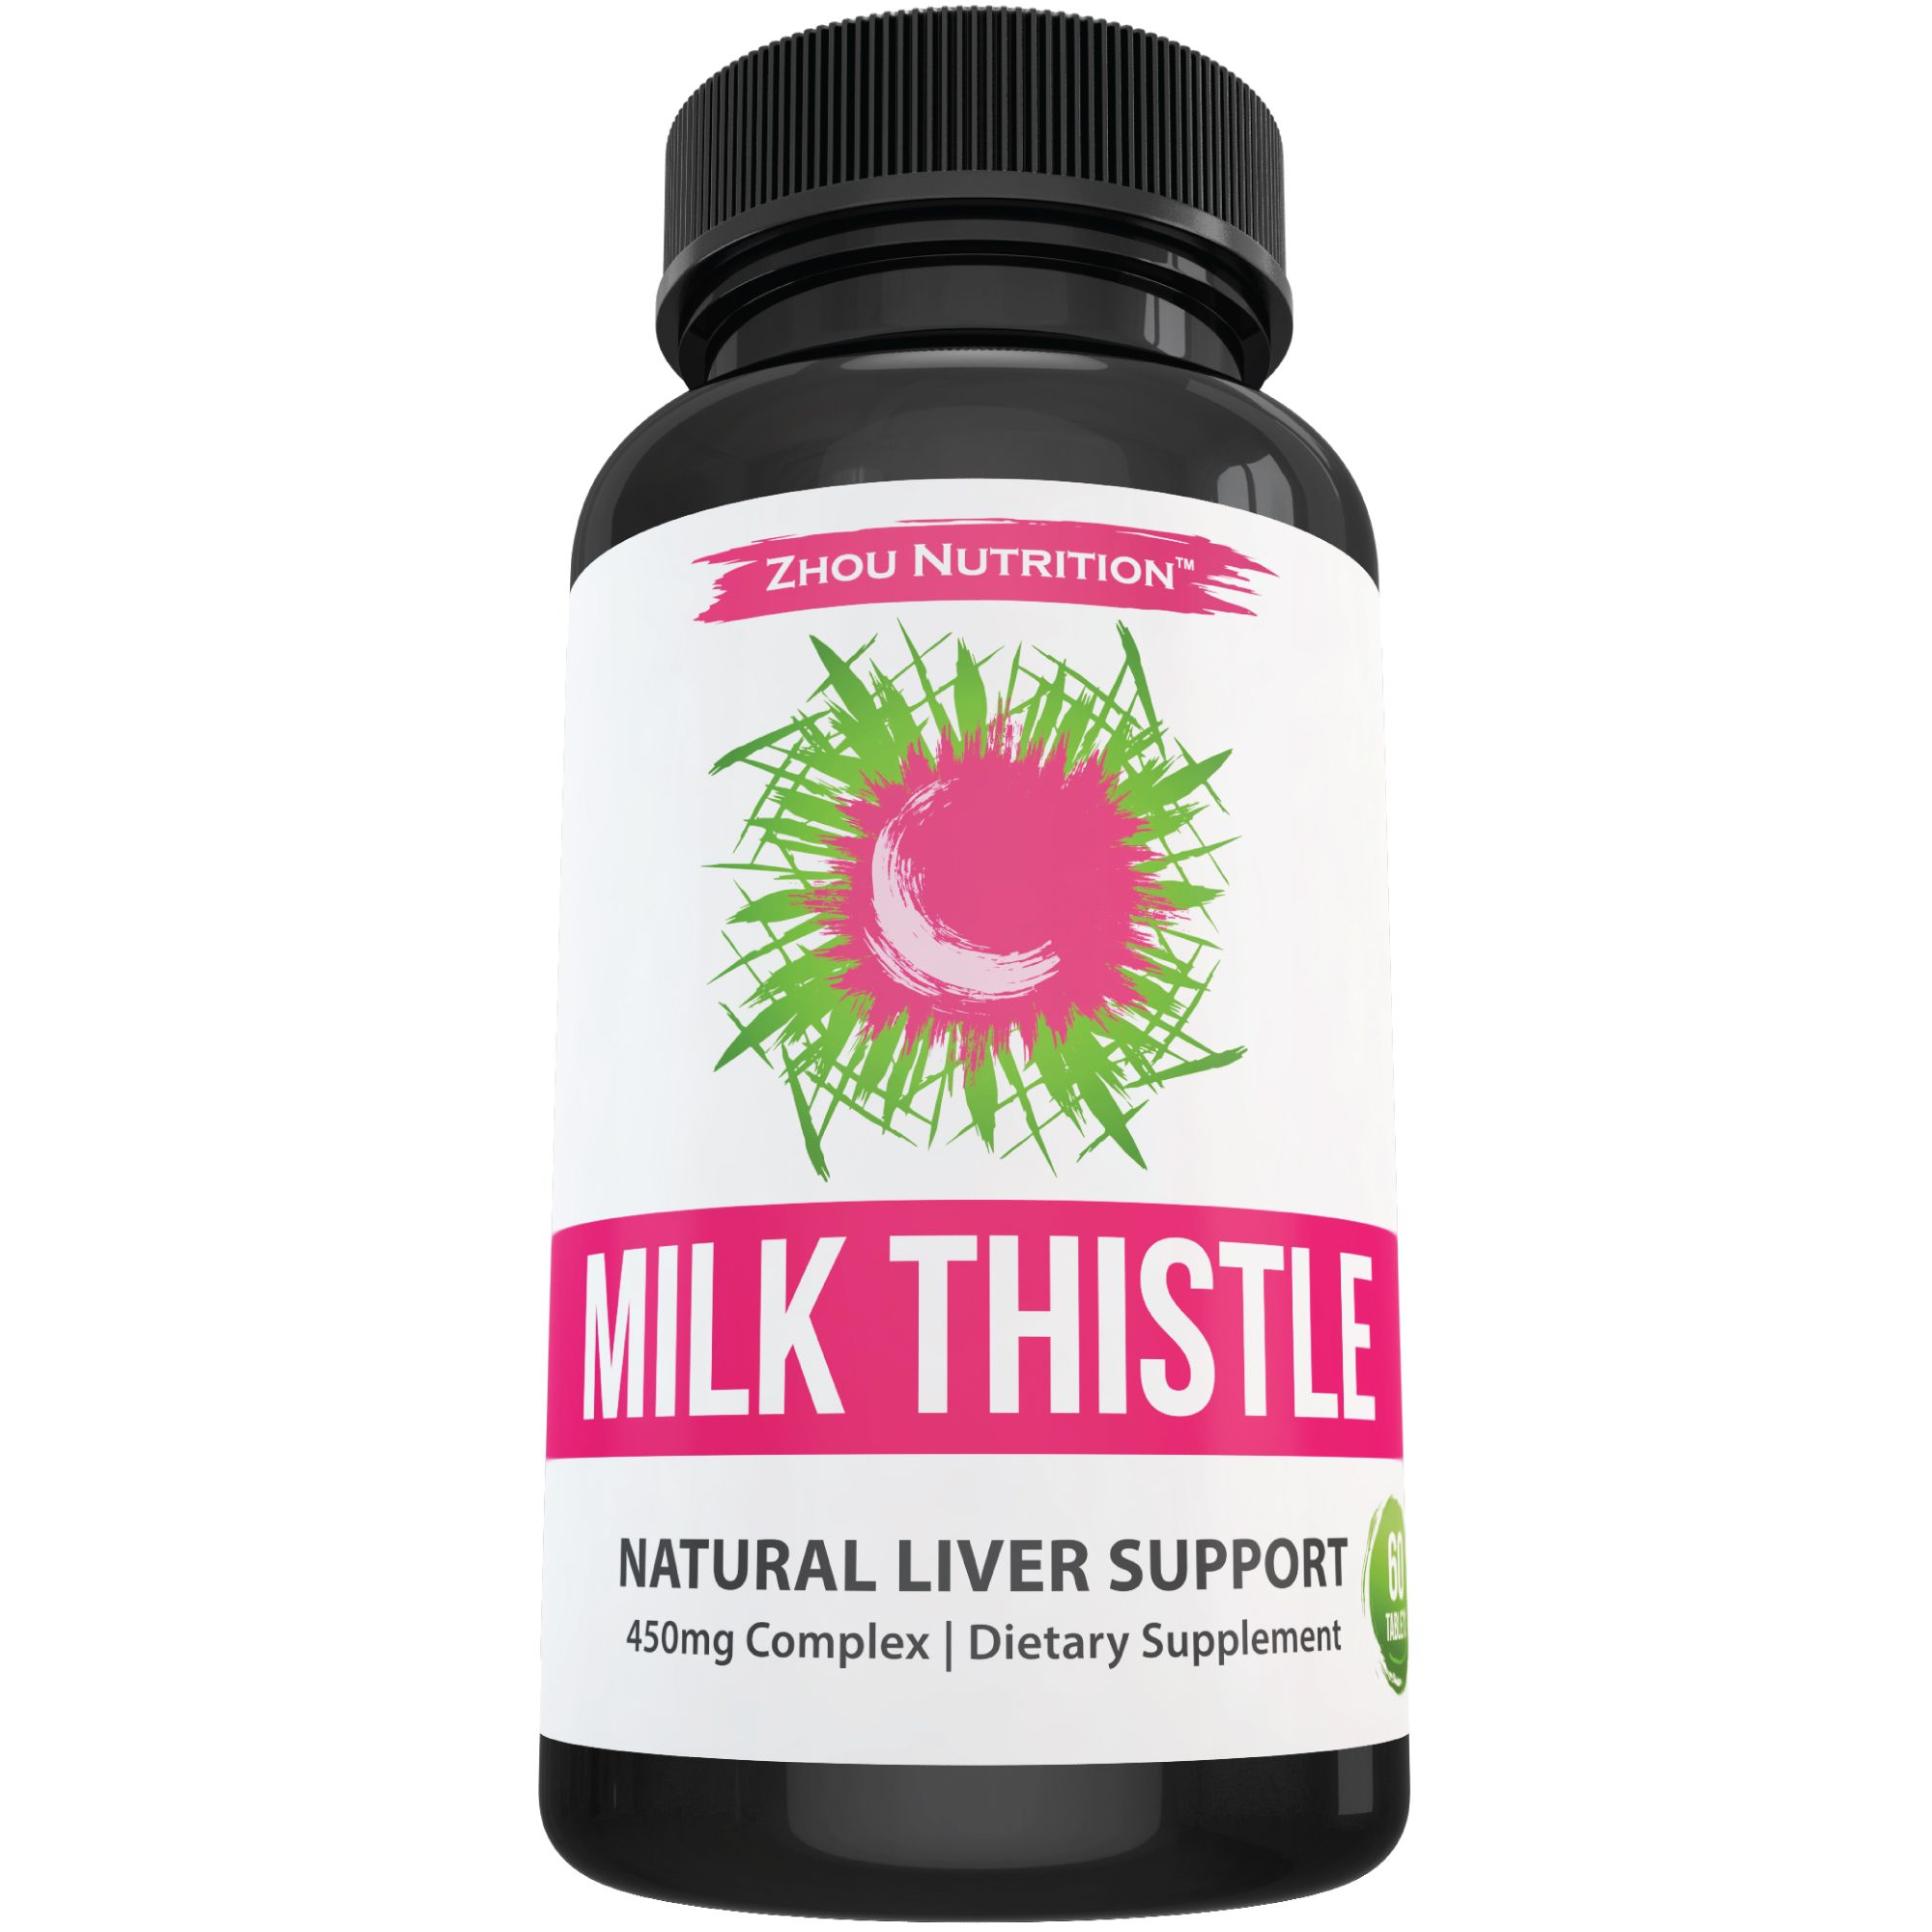 42+ Natures craft liver support with milk thistle information